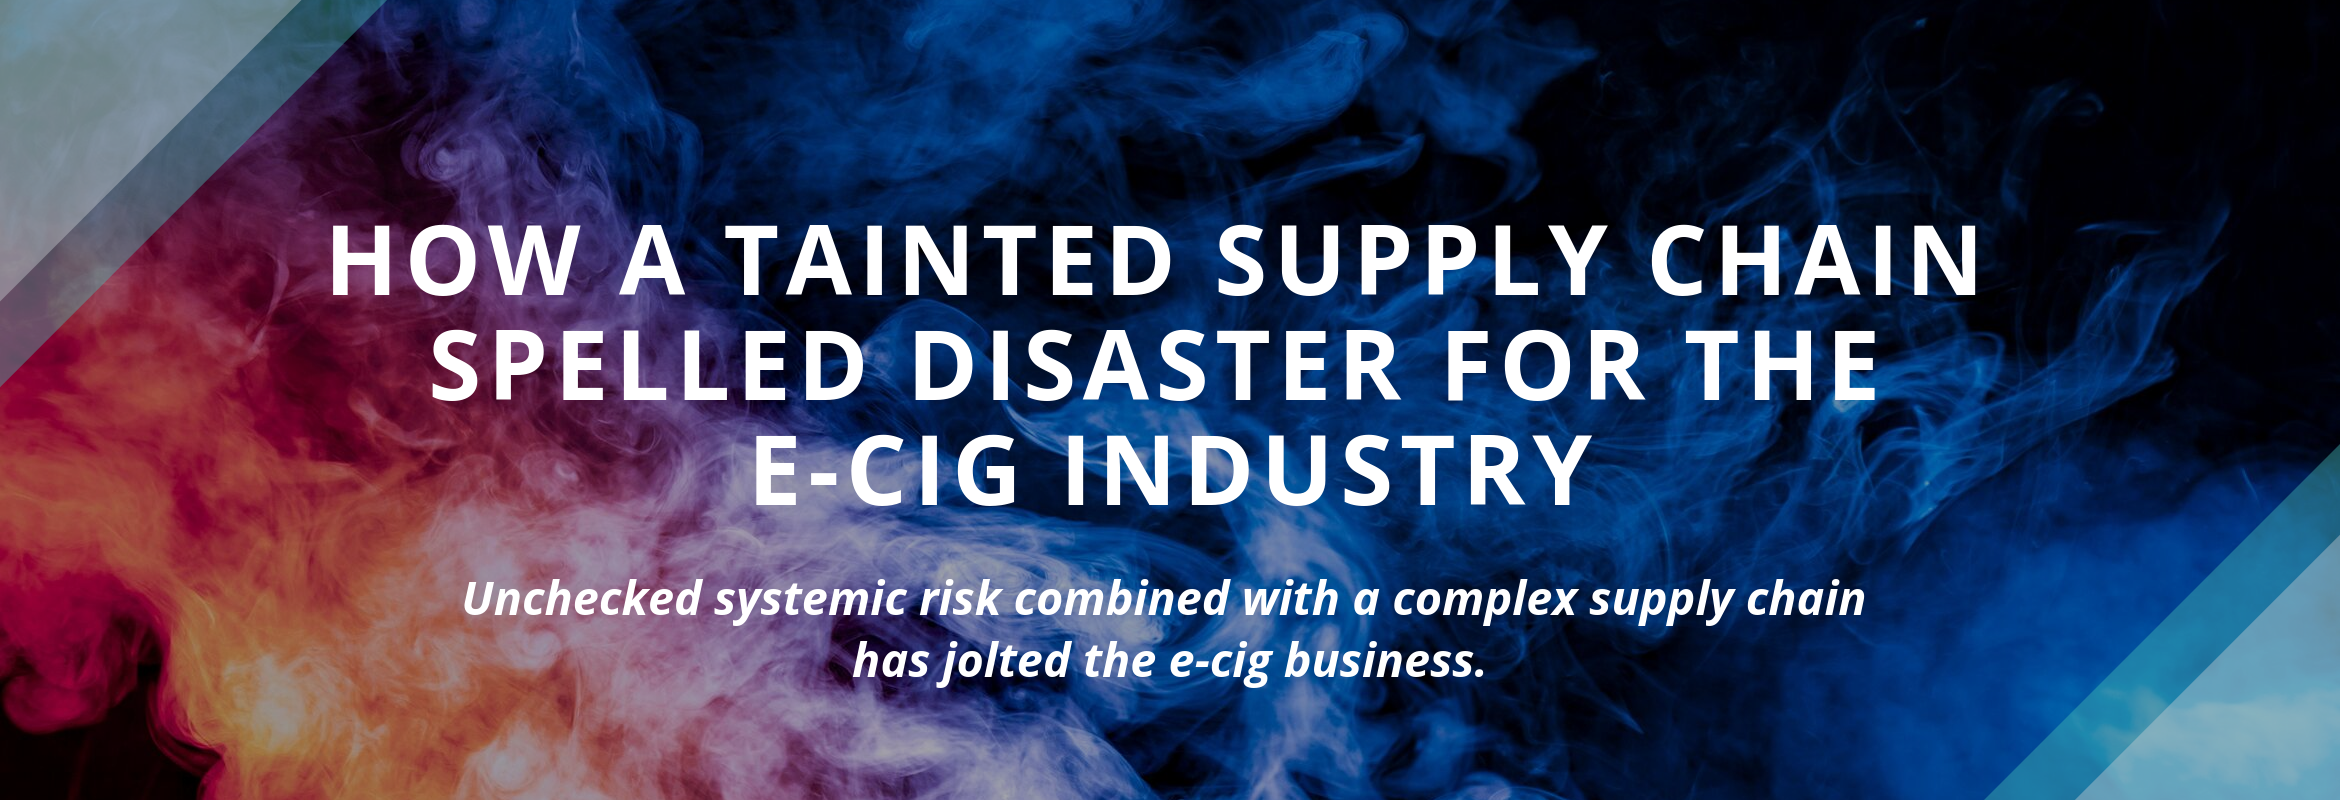 e-cigarette supply chain